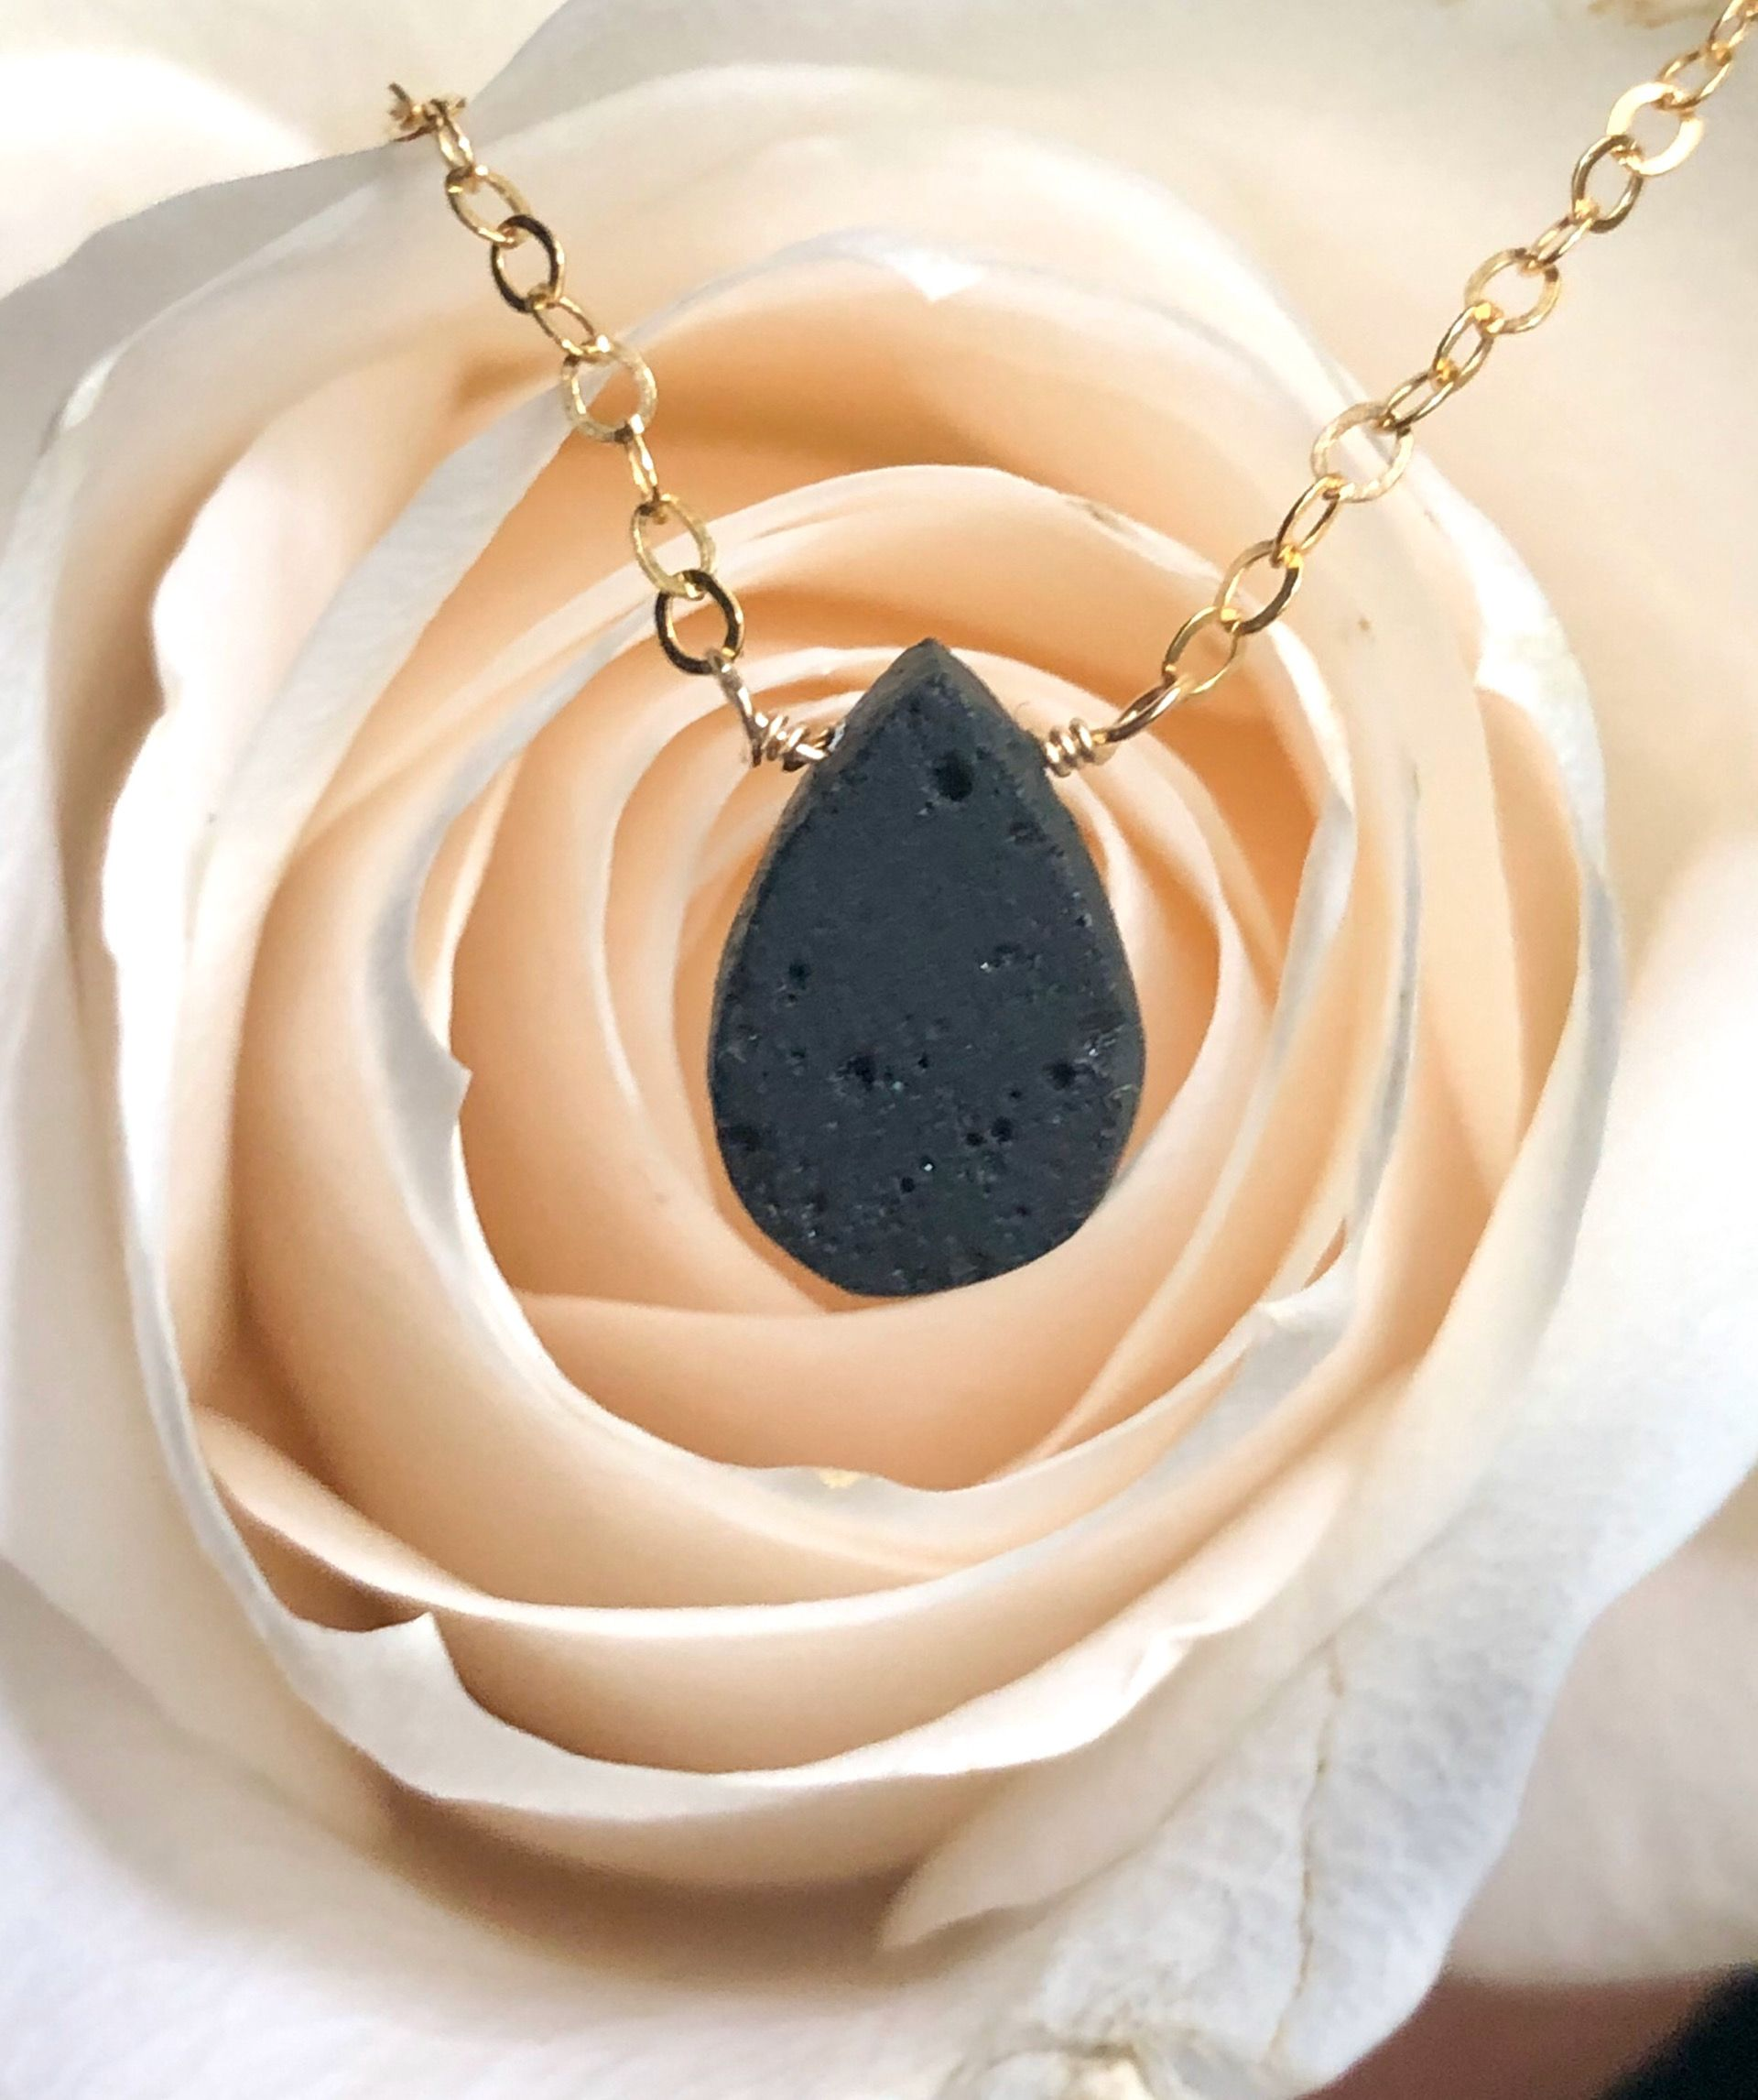 Droplet diffuser necklace aromatherapy necklace gold